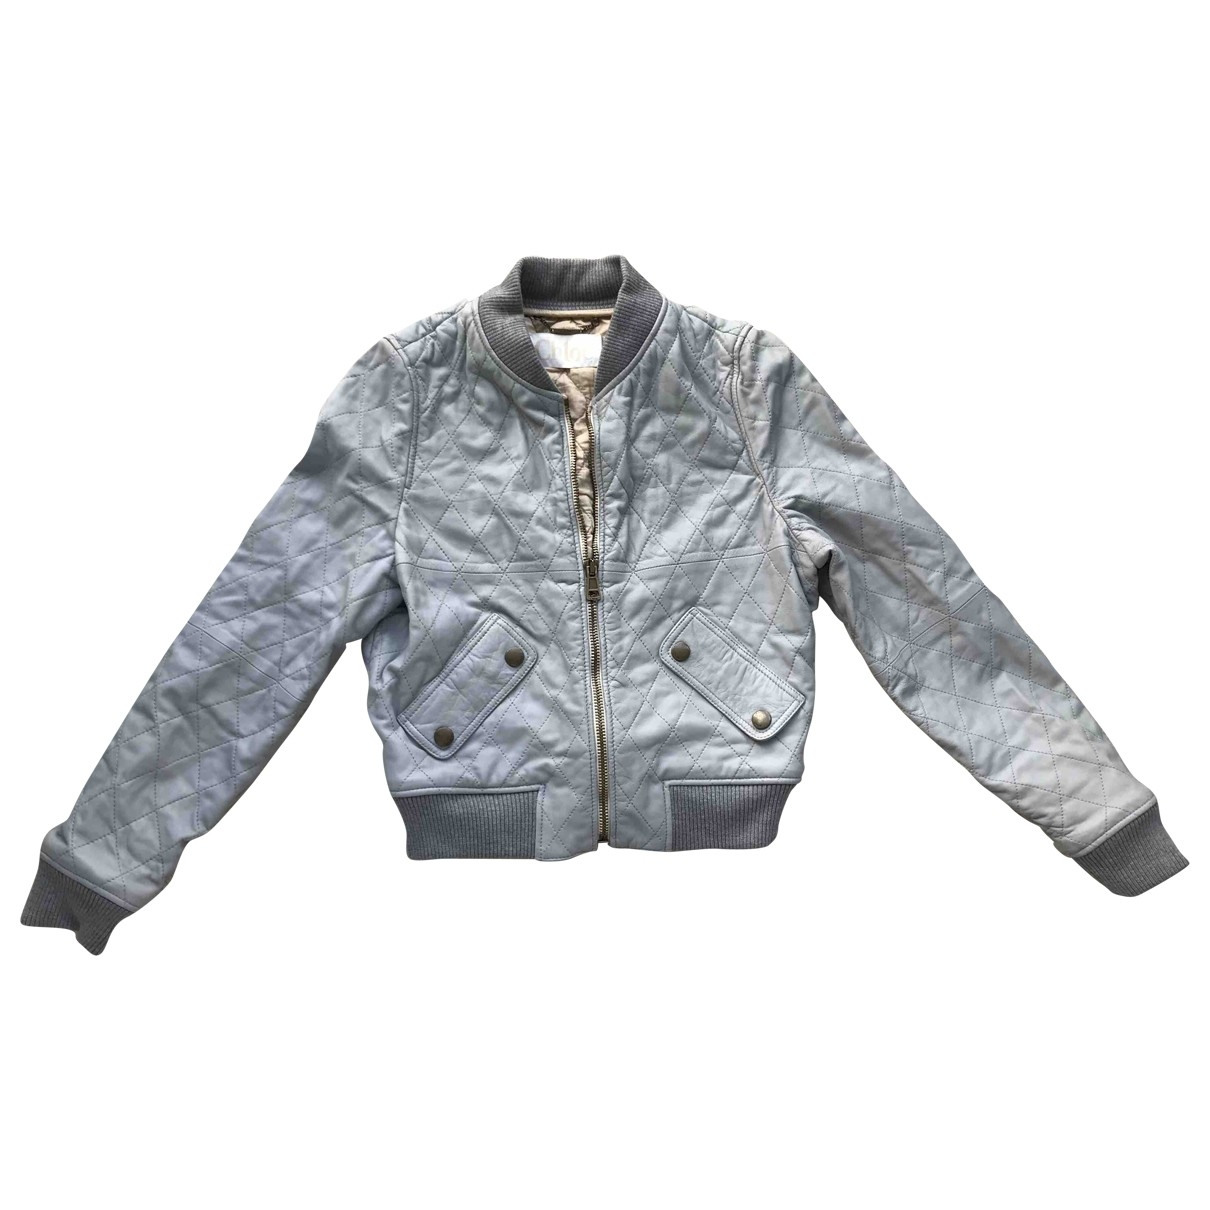 Chloé \N Blue Leather jacket for Women 36 FR